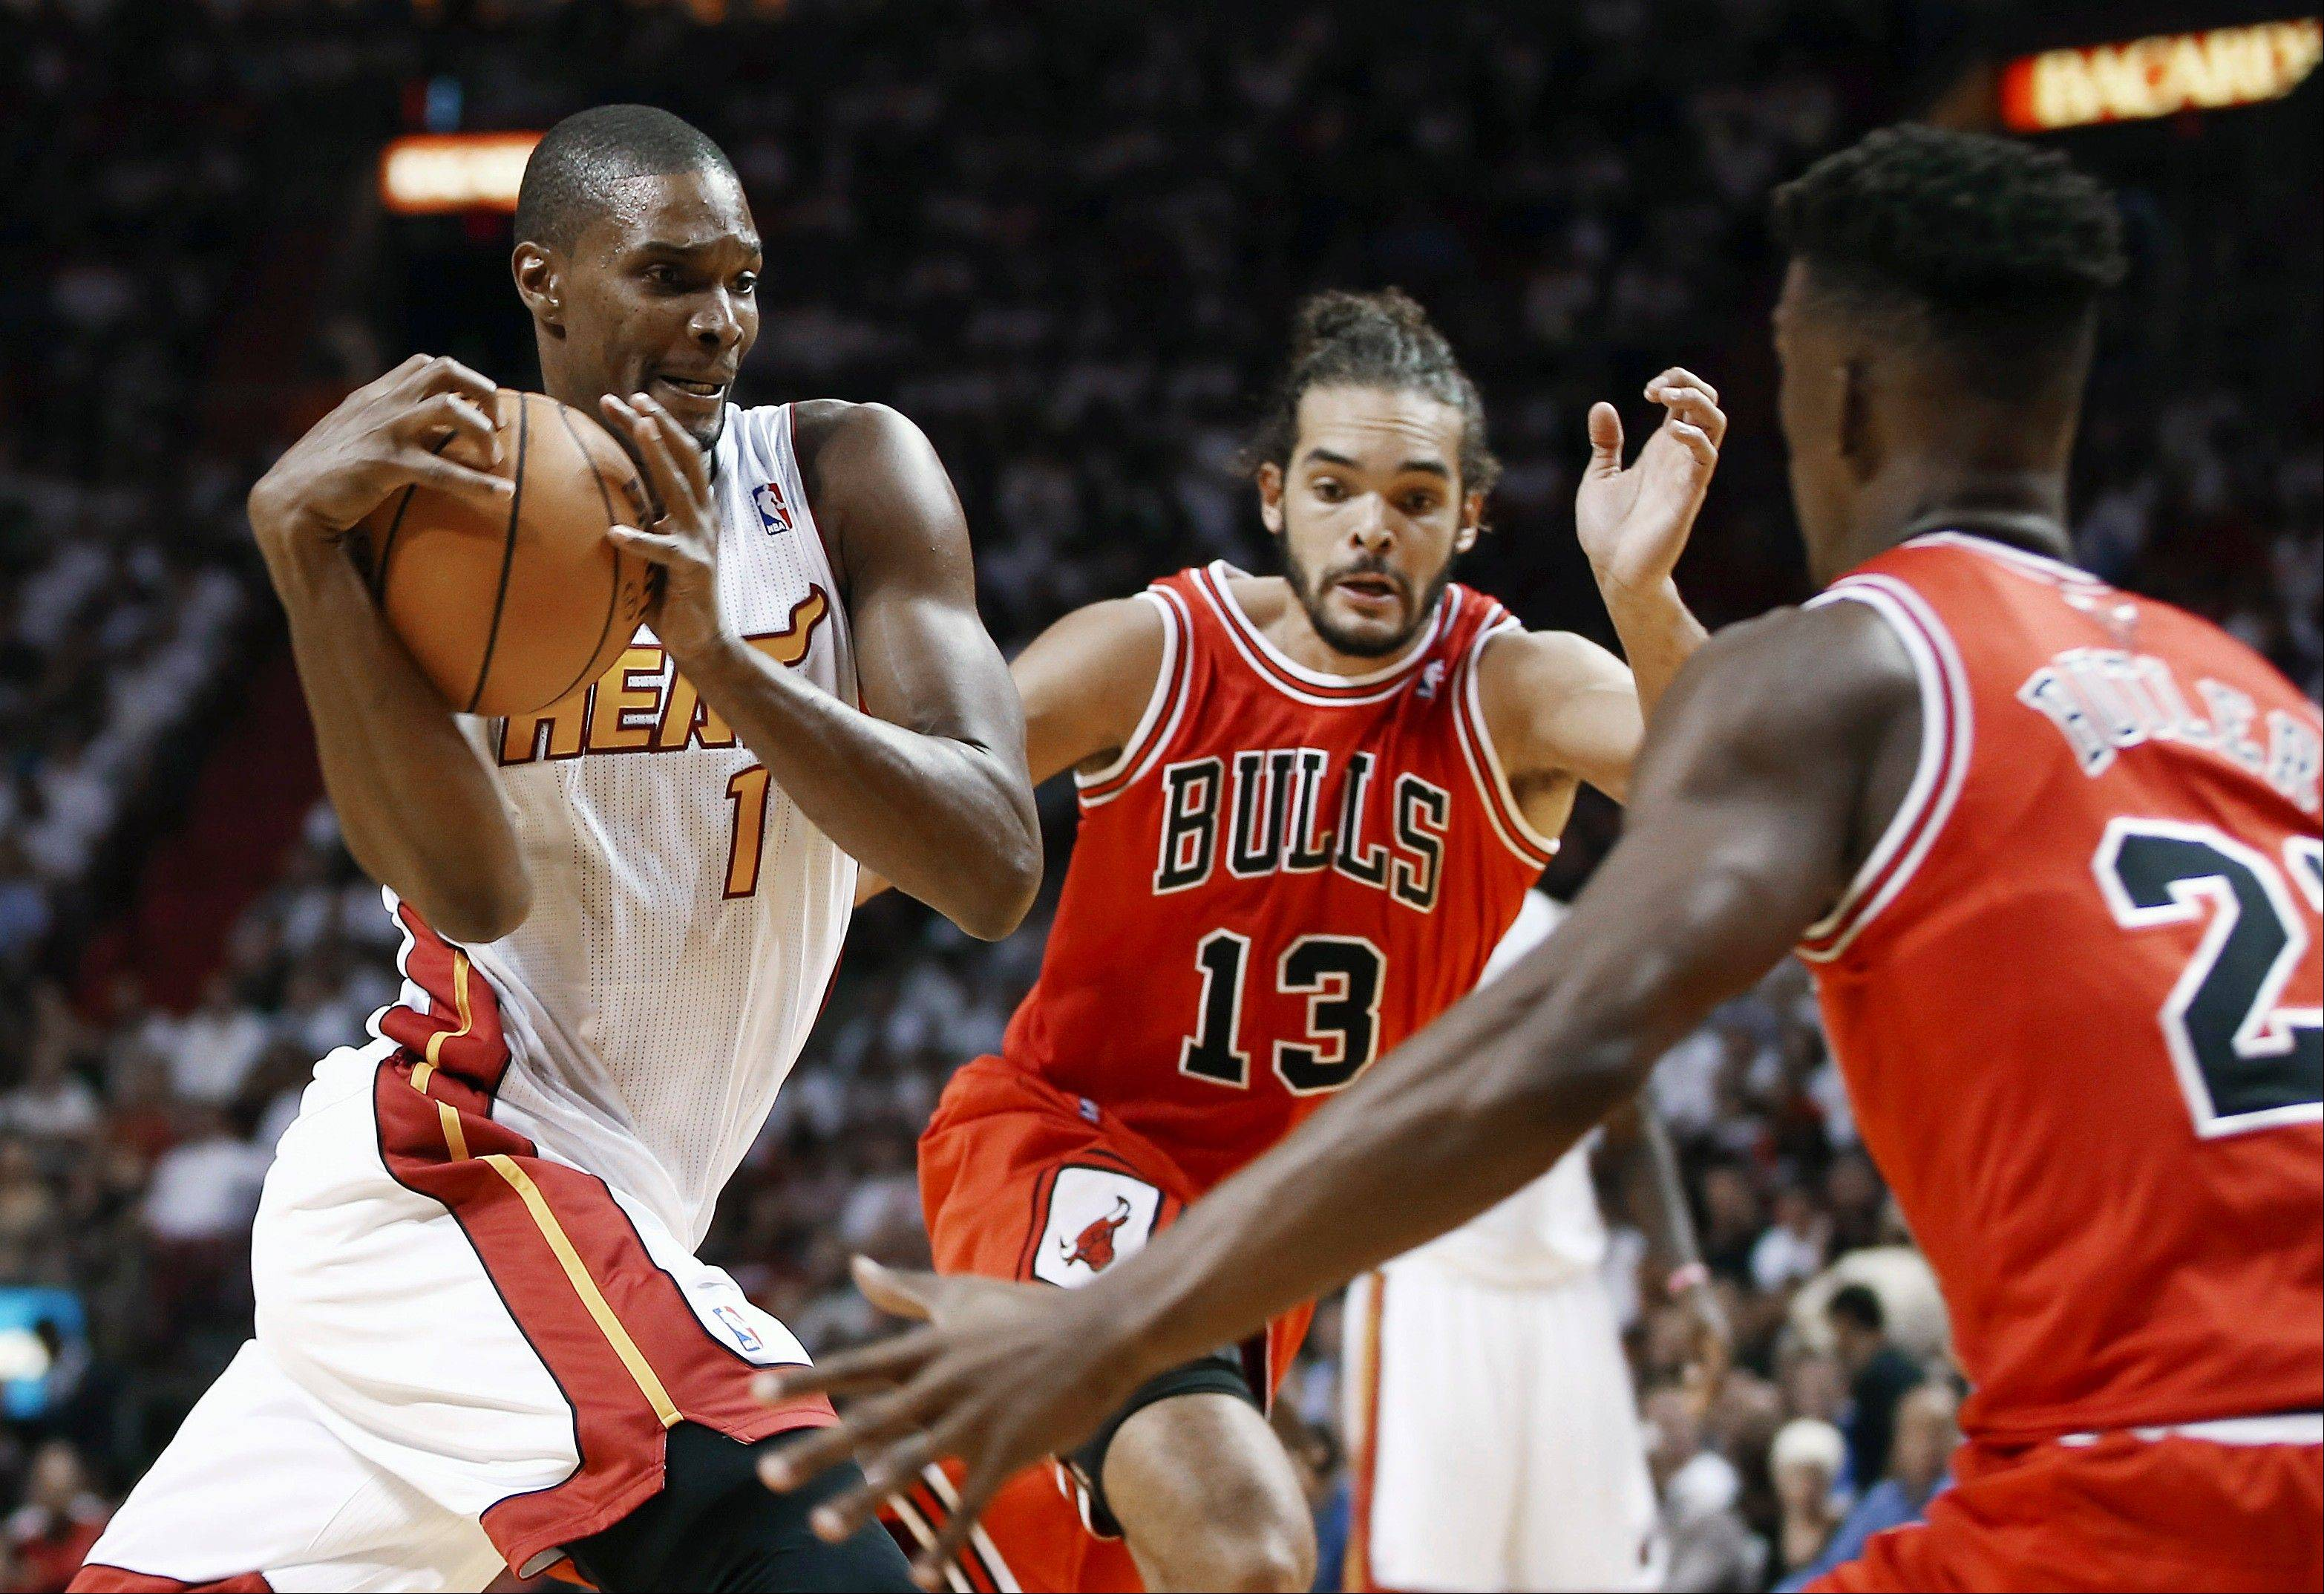 Miami Heat's Chris Bosh (1) tries to drive between Chicago Bulls' Joakim Noah (13) and Jimmy Butler (22) during the first half of an NBA basketball game in Miami, Tuesday, Oct. 29, 2013.